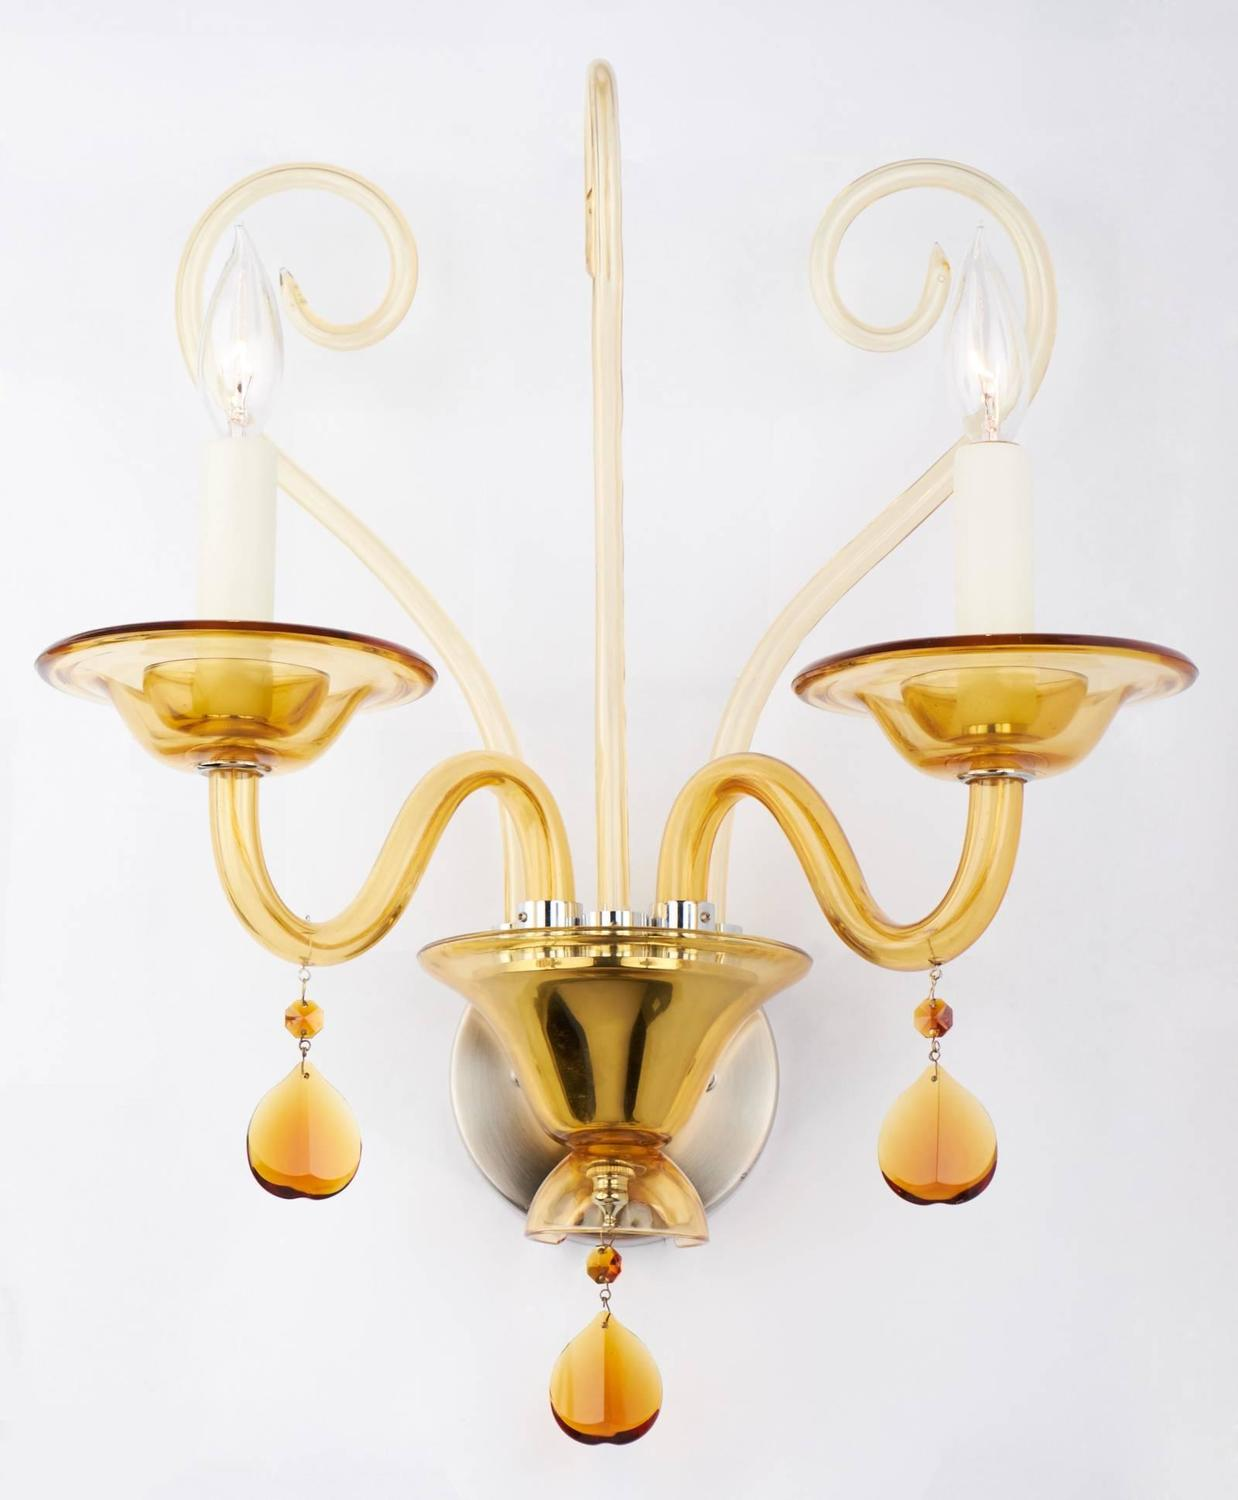 Murano Amber Glass Wall Sconce For Sale at 1stdibs